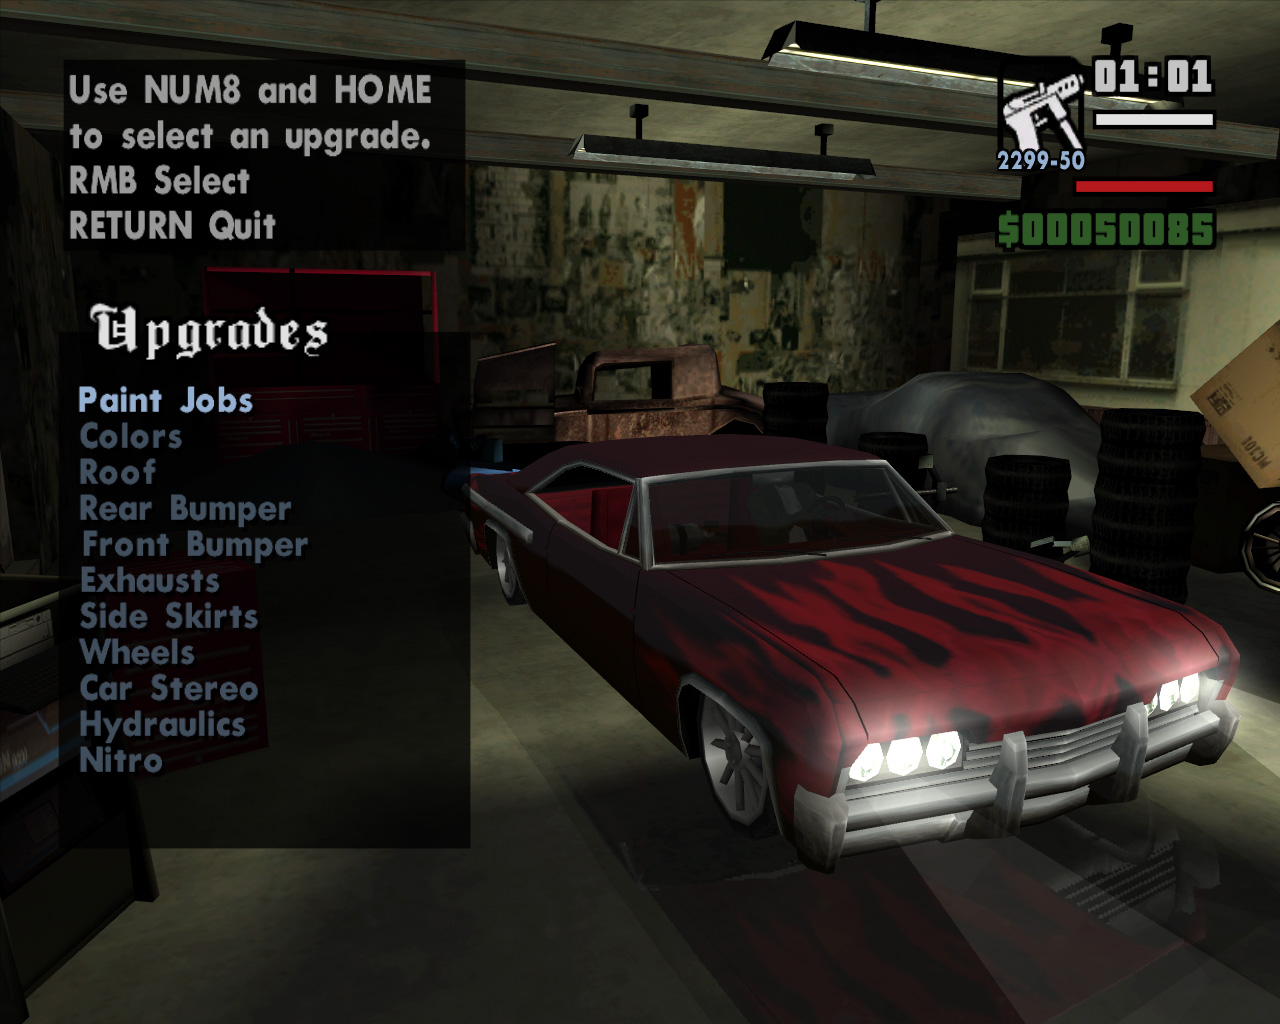 loco low co gta wiki the grand theft auto wiki gta iv san andreas vice city cars. Black Bedroom Furniture Sets. Home Design Ideas